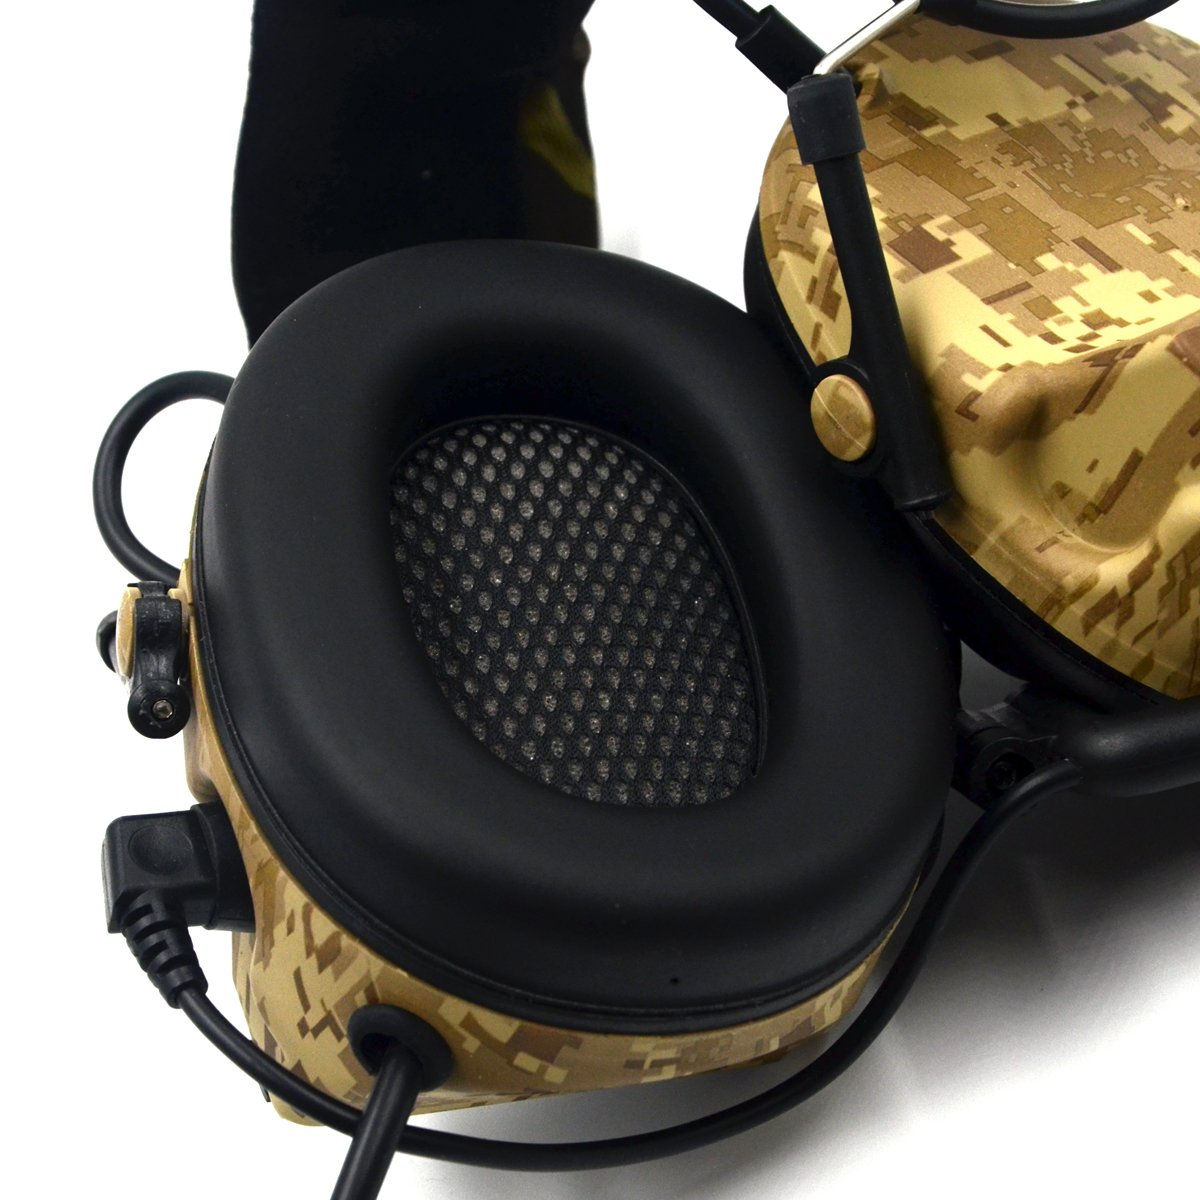 Electronic Earmuff Sport Hearing Protector for Hunting & Shooting, Sand Color by Dolphin (Image #7)